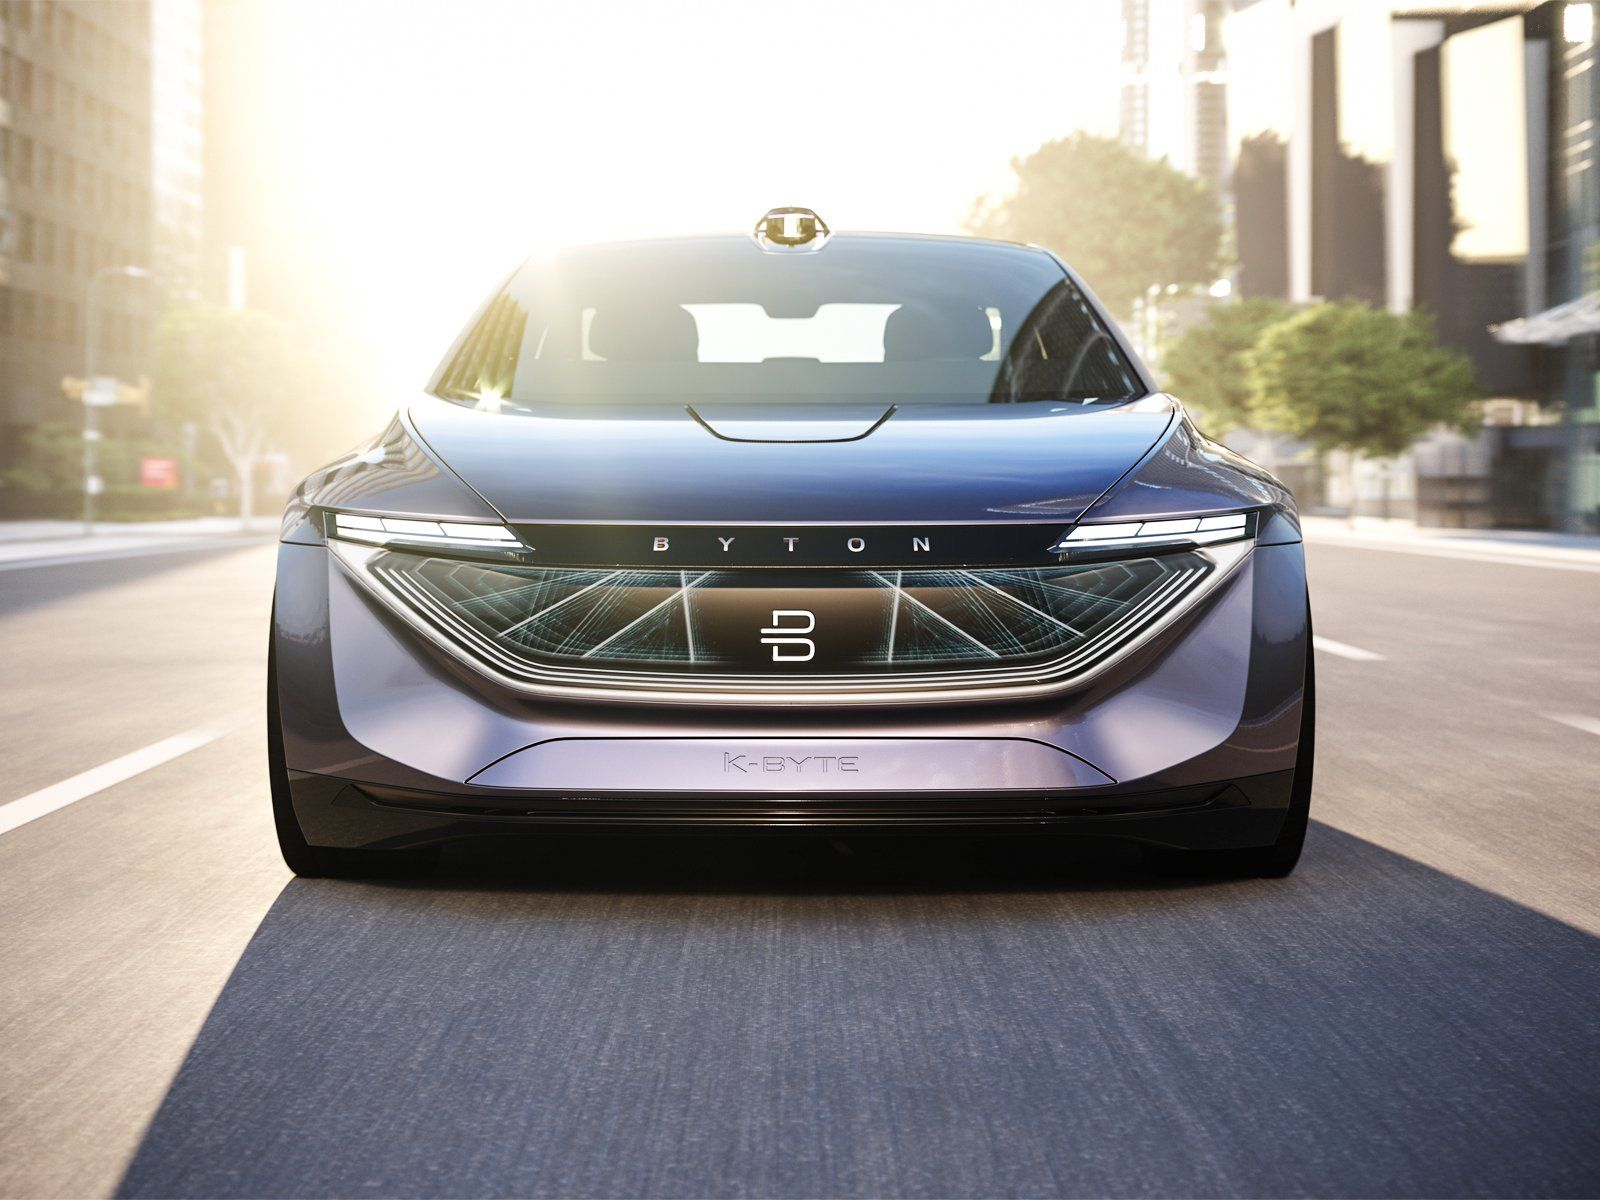 Byton Electric Cars Focusing On Tech To Compete Business Insider Electric Cars Concept Cars Chinese Car